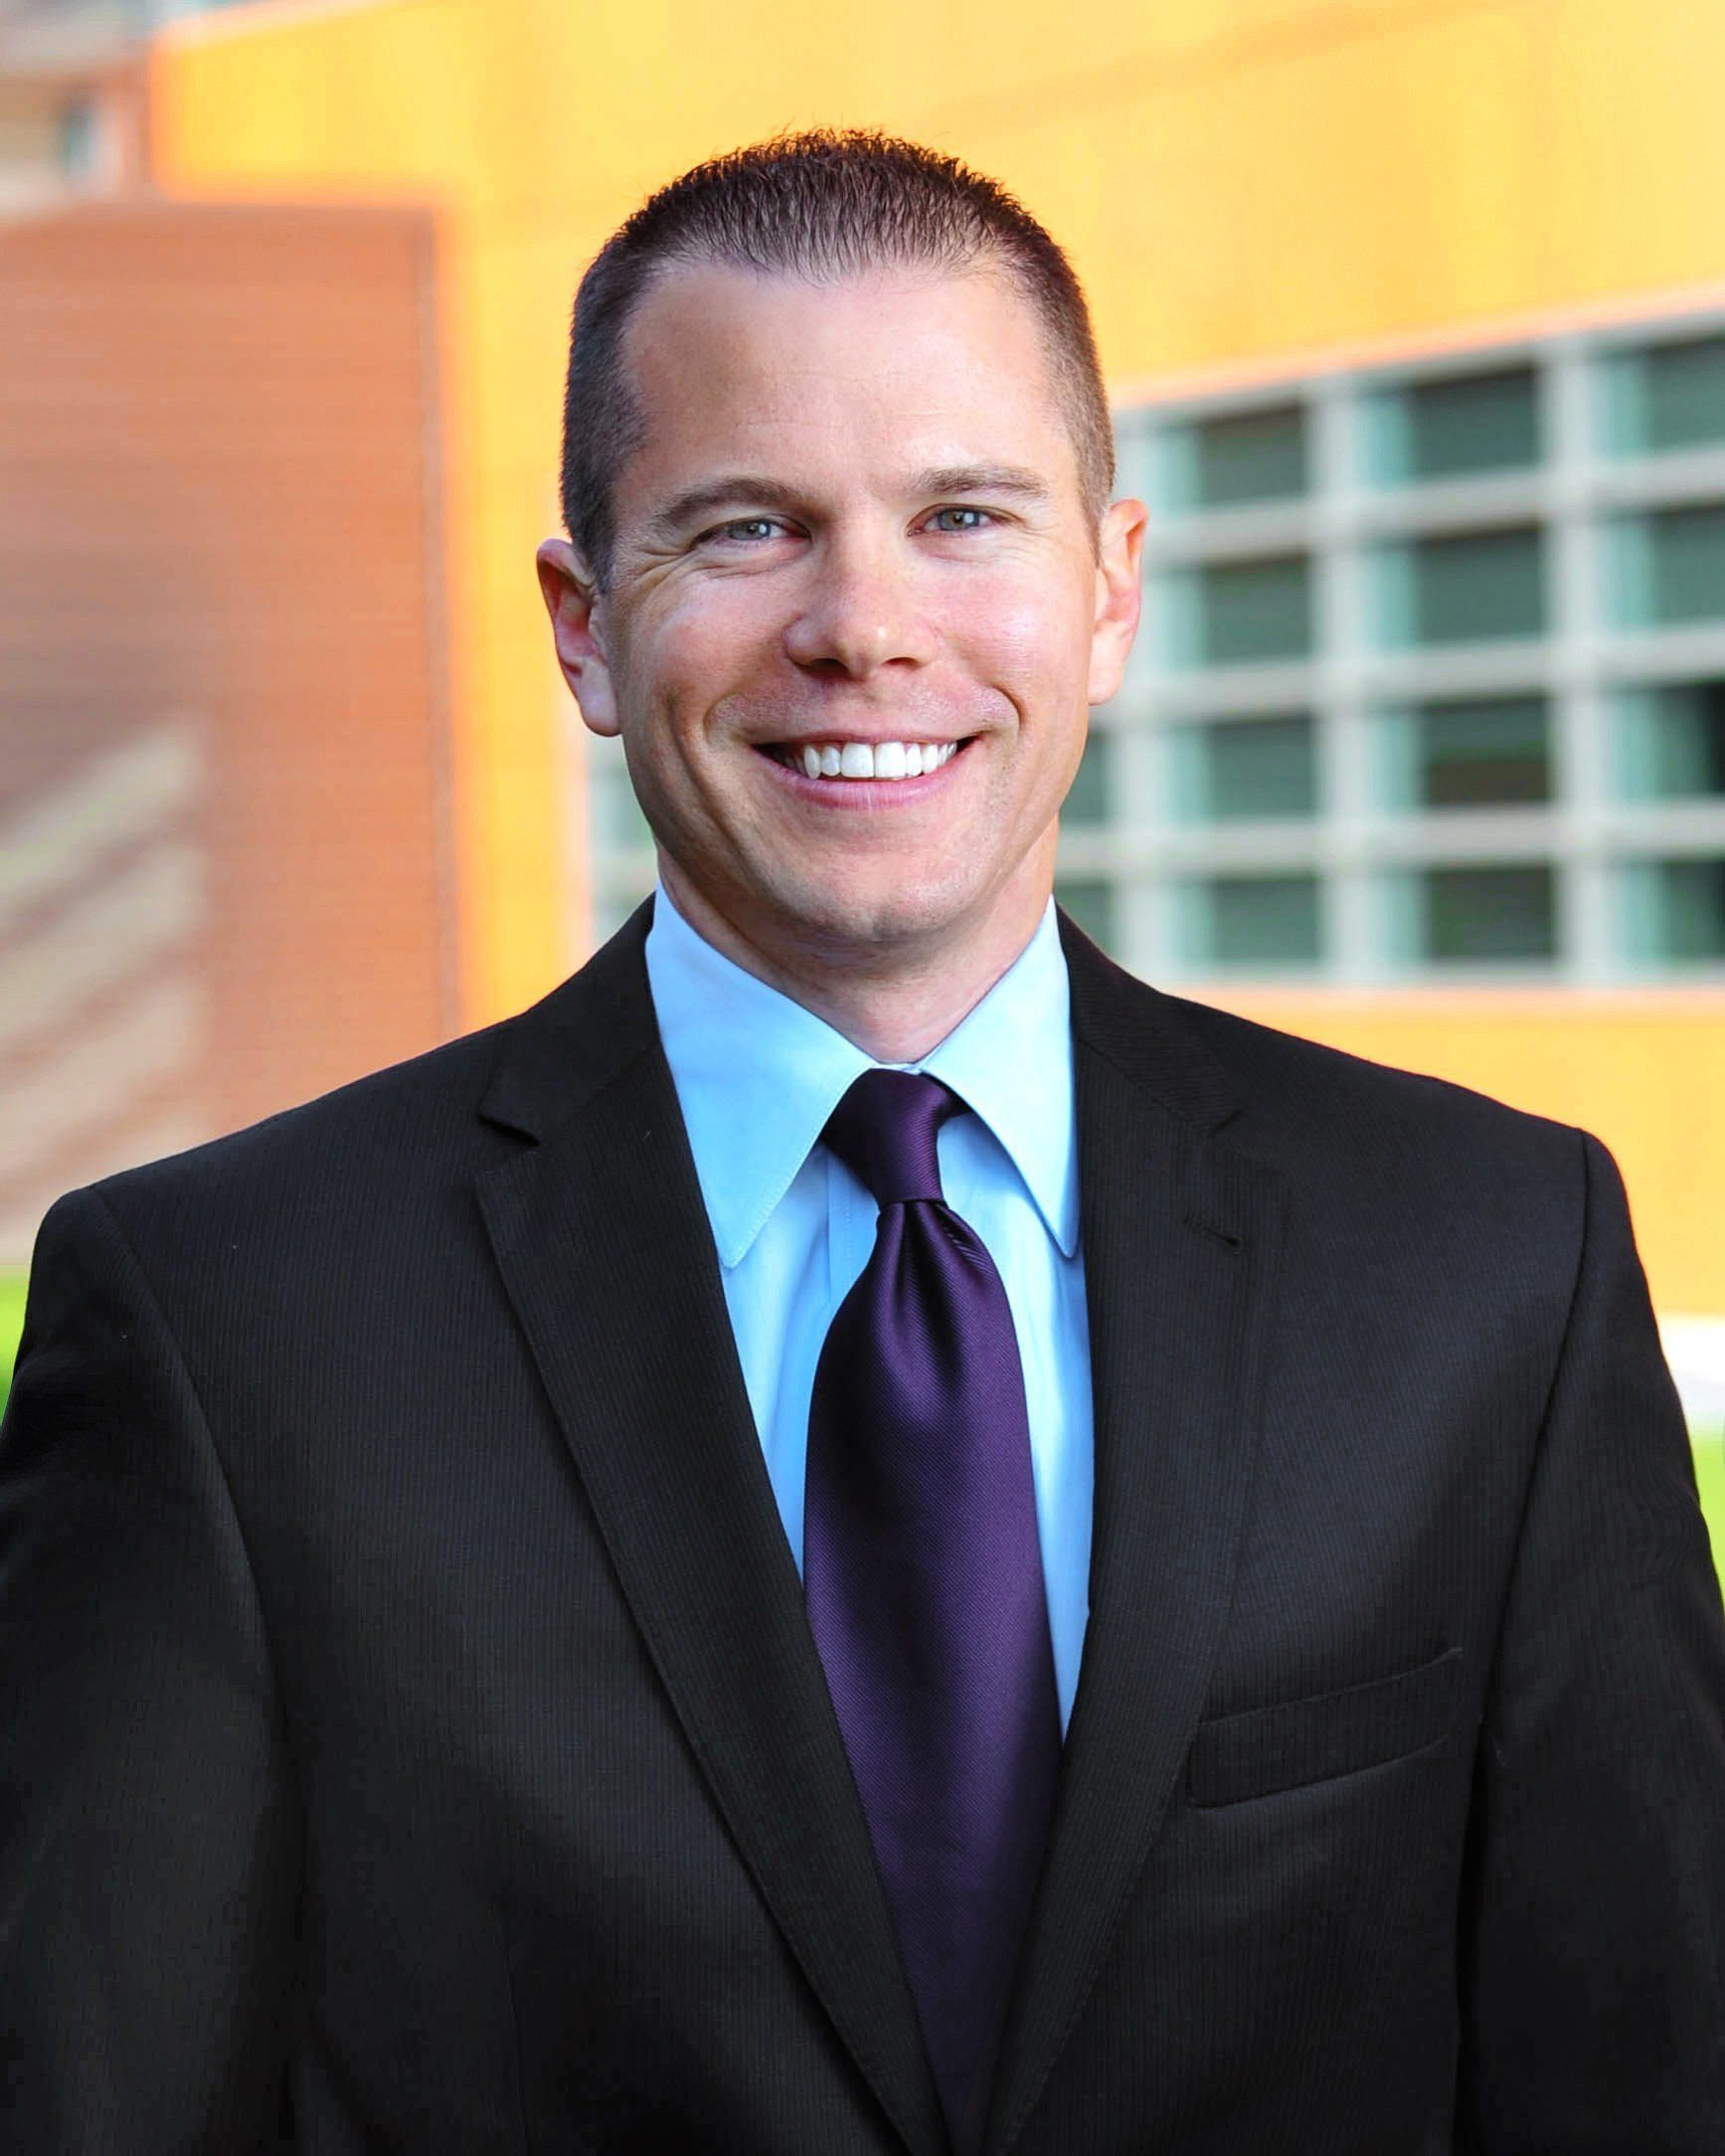 Matt Mika has worked as a lobbyist for Tyson Foods for more than six years, the company said.